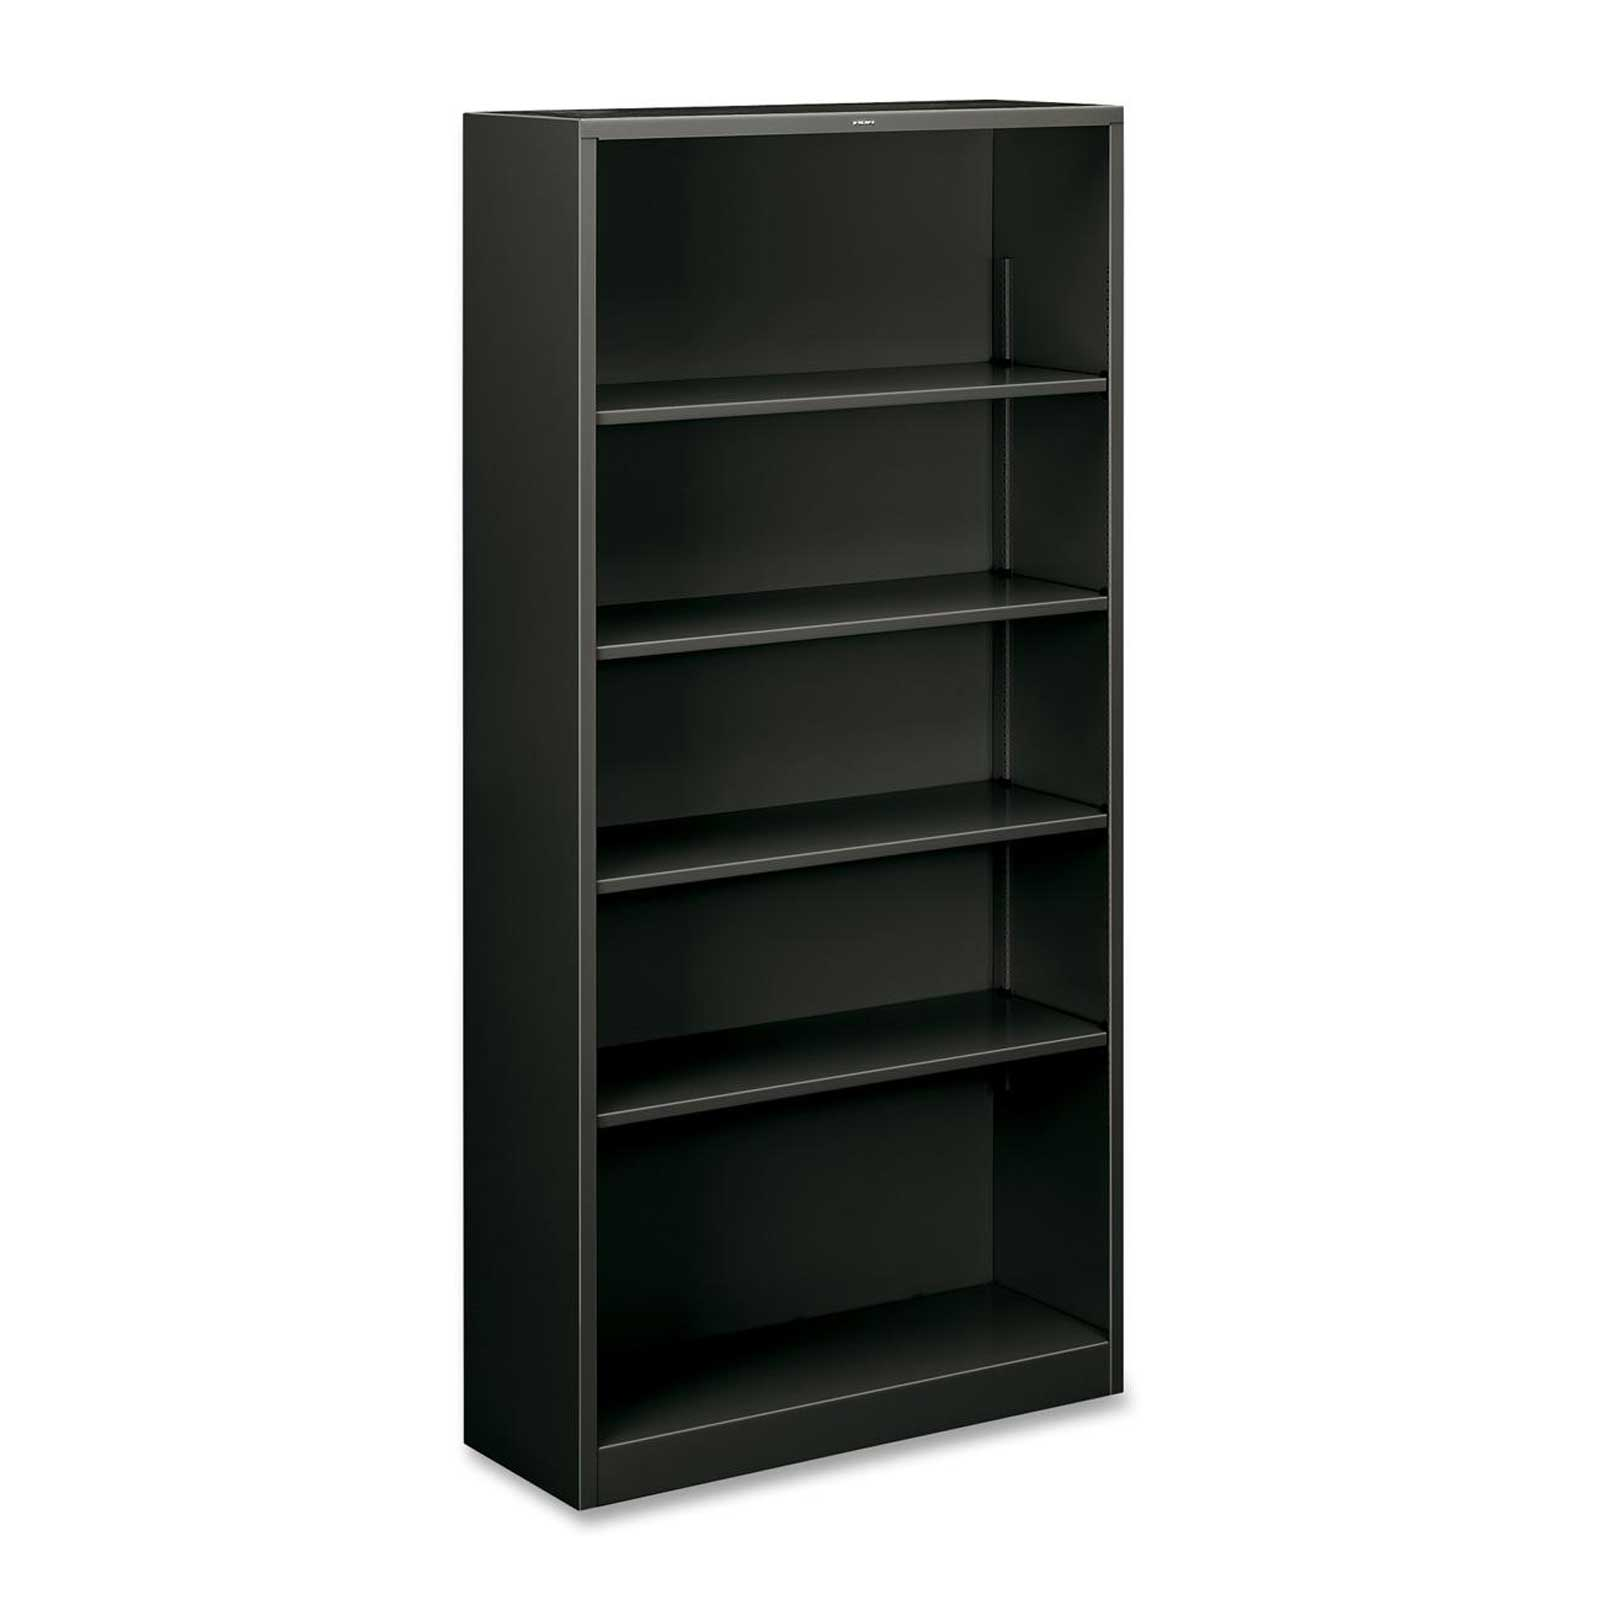 HON metal bookcase black with five shelves